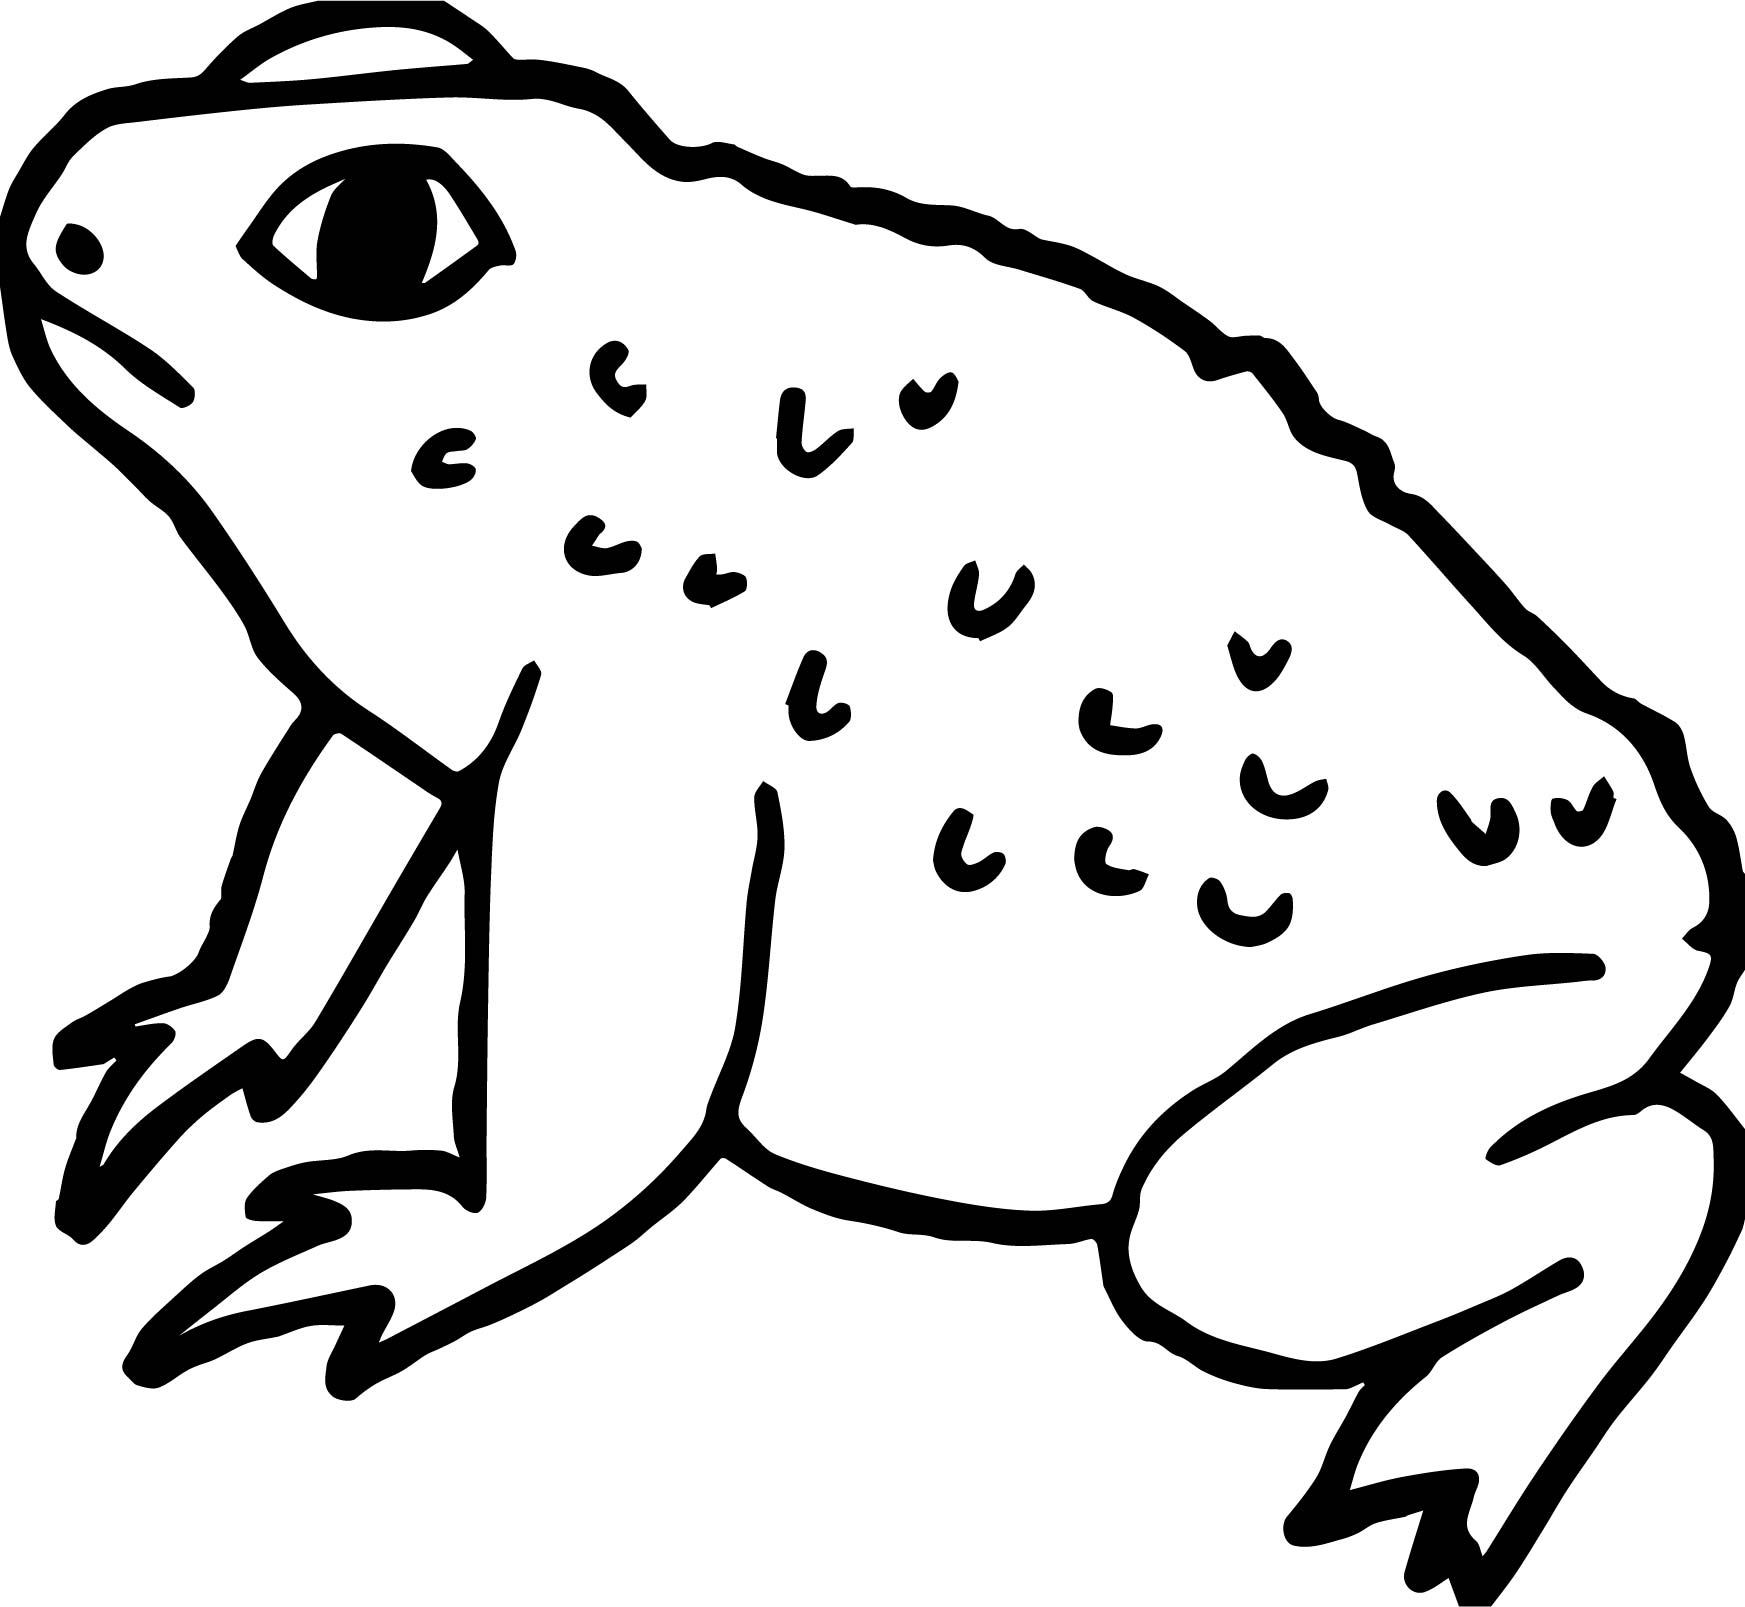 Big Frog Coloring Pages Big Frog Coloring Pages Coloring Pages